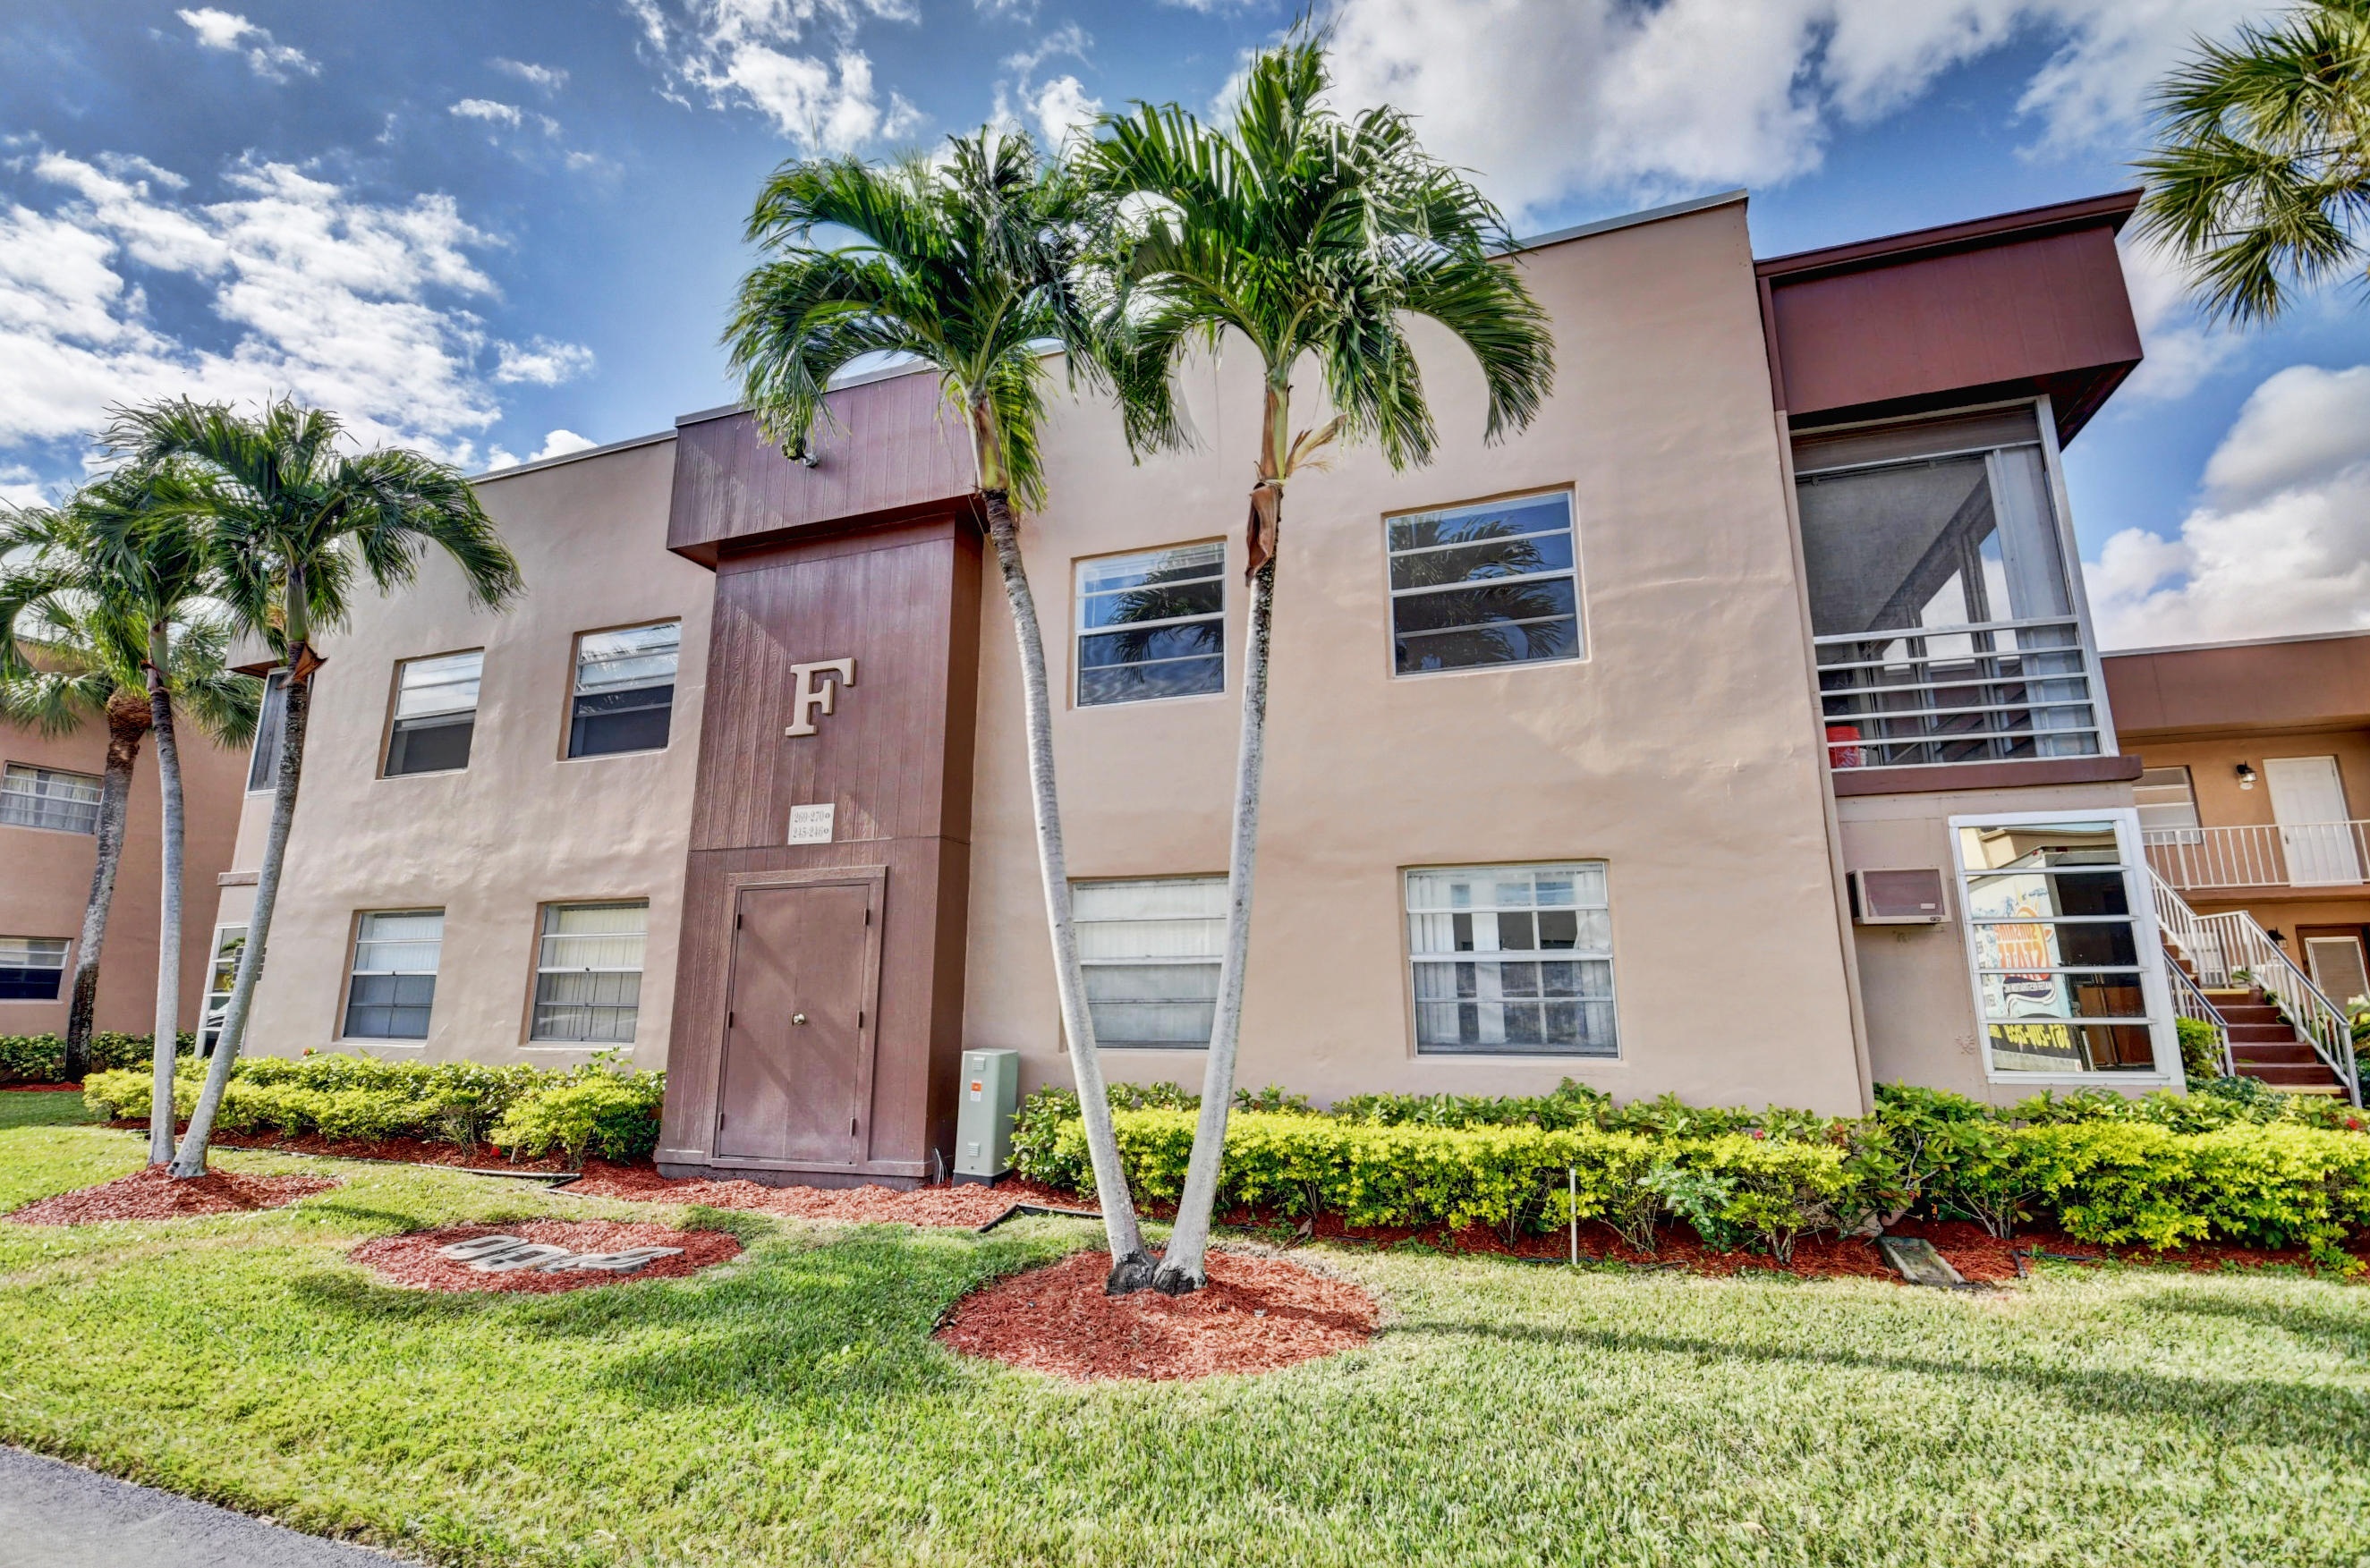 269 Burgundy F, Delray Beach, Florida 33484, 2 Bedrooms Bedrooms, ,2 BathroomsBathrooms,Rental,For Rent,Burgundy F,RX-10680236